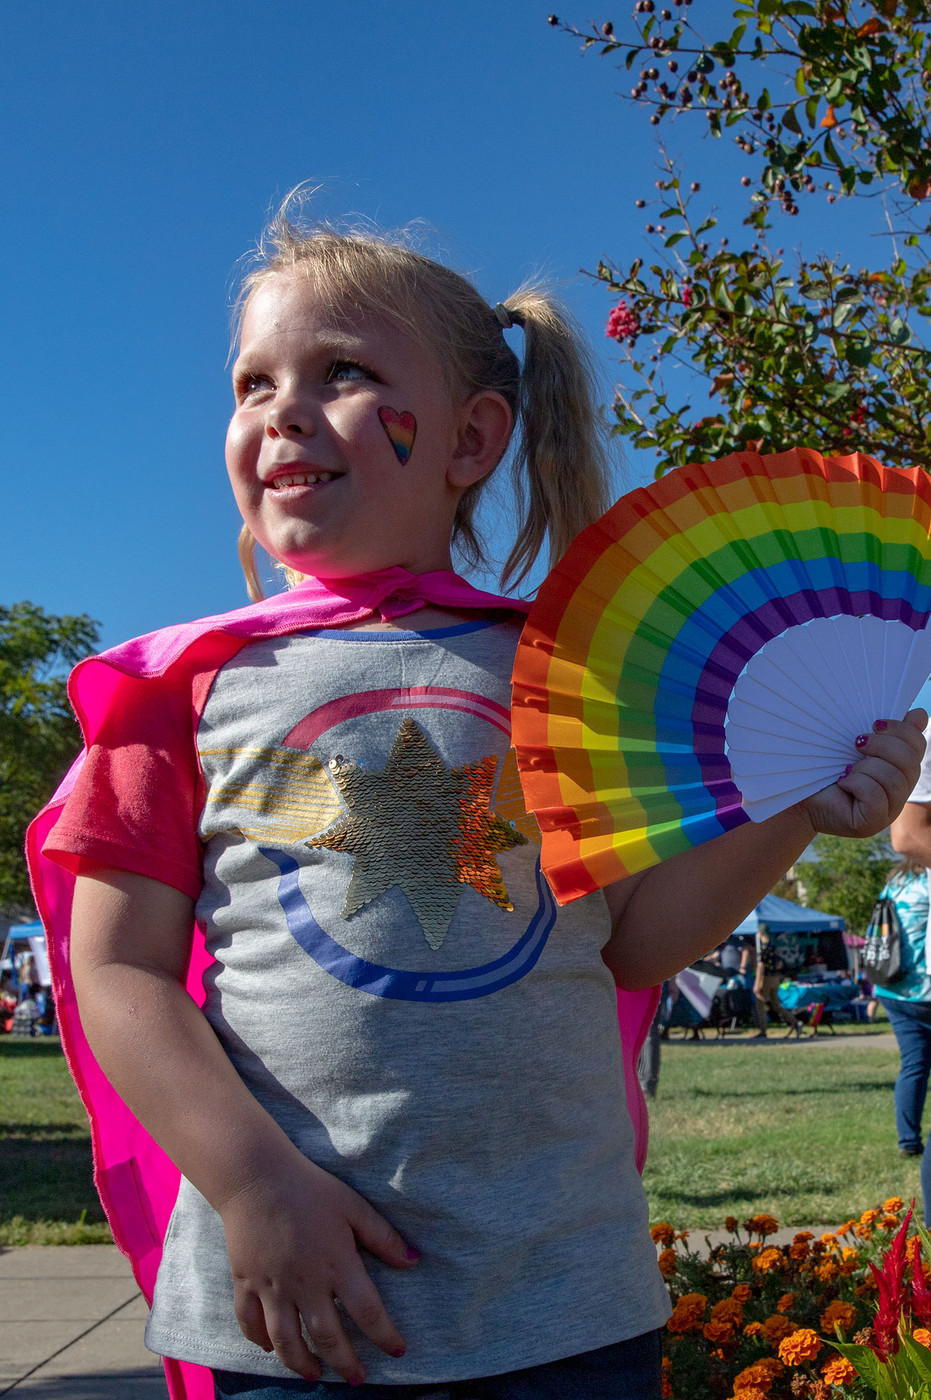 """Peyton Church, a 5-year-old Bowling Green native, celebrates at the Bowling Green Pride Festival. Church attended the festival with her mother and sister in order to show support for her sister, Sydney, who identifies as a member of the LGBTQ+ community. """"I got to get my nails and face painted today and celebrate with my mom and sister, so I think it's been a fun day. I love getting to have fun and just celebrate my sister and see her so happy,"""" Church said."""